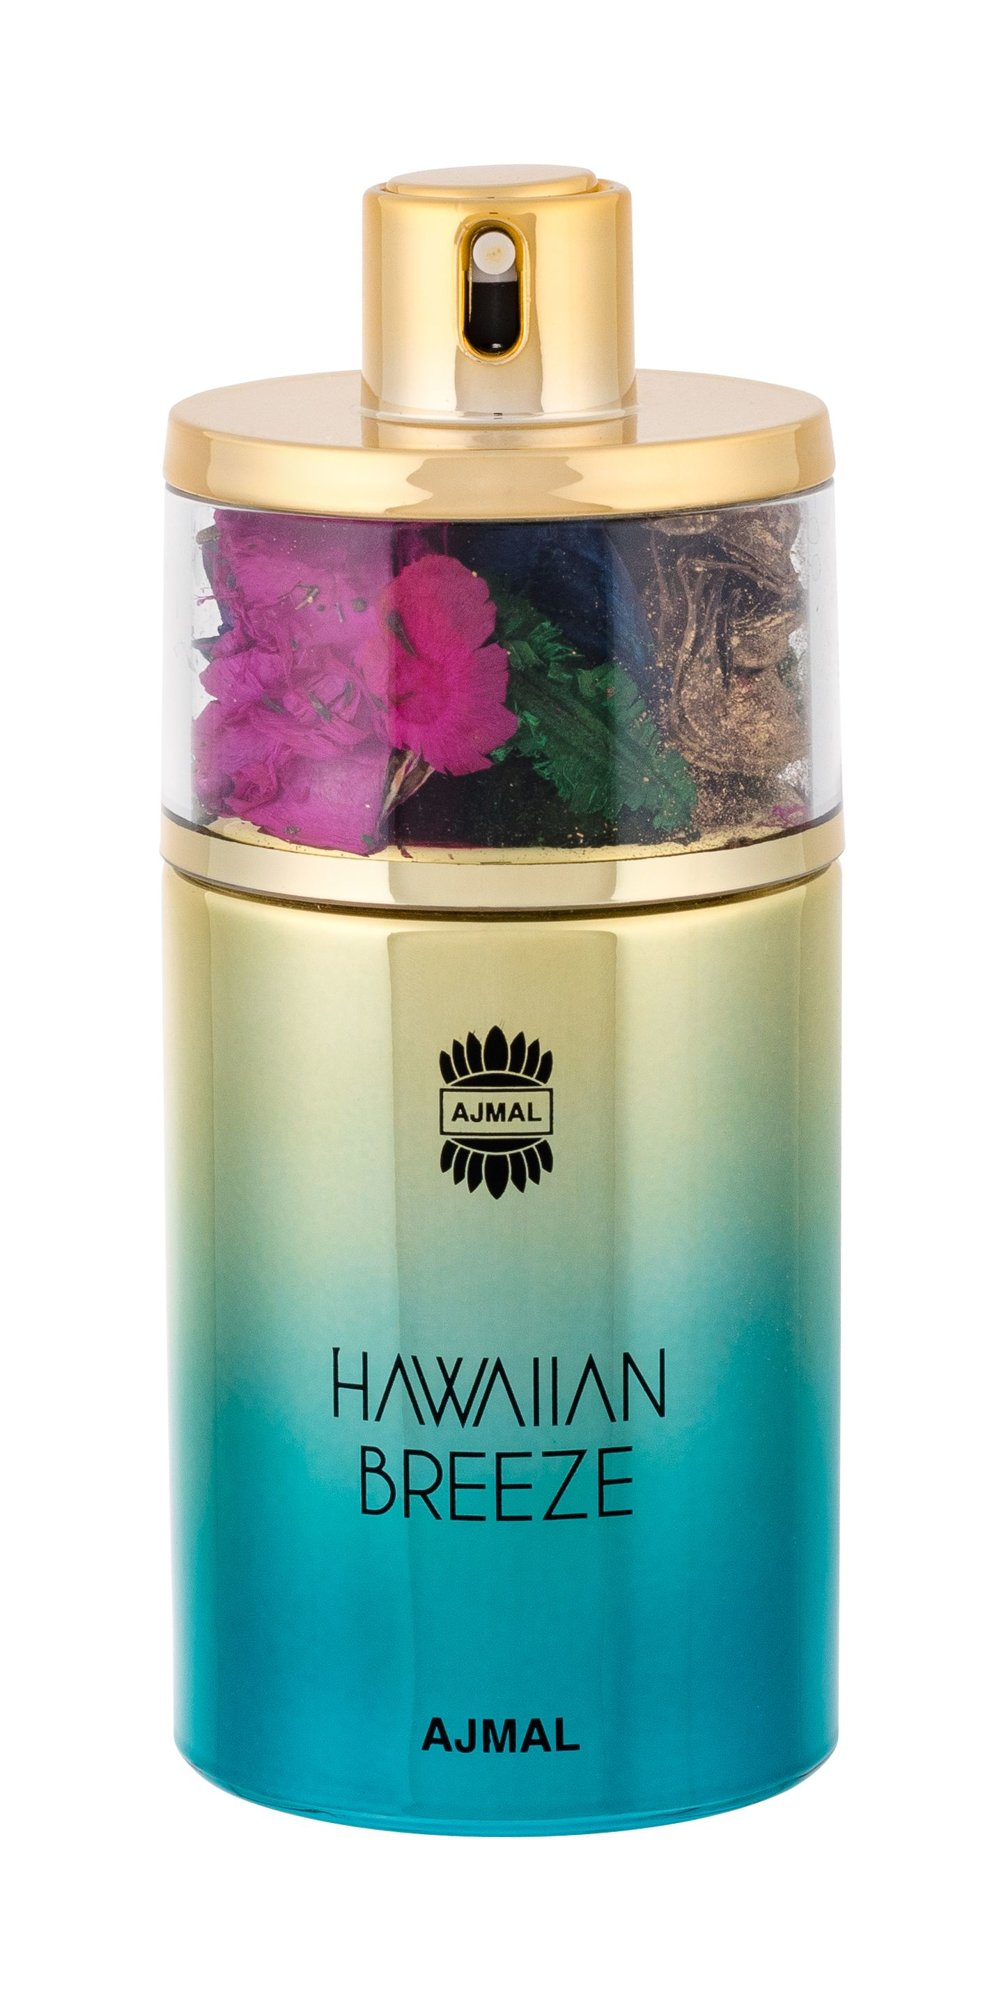 Ajmal Hawaiian Breeze Eau de Parfum 75ml